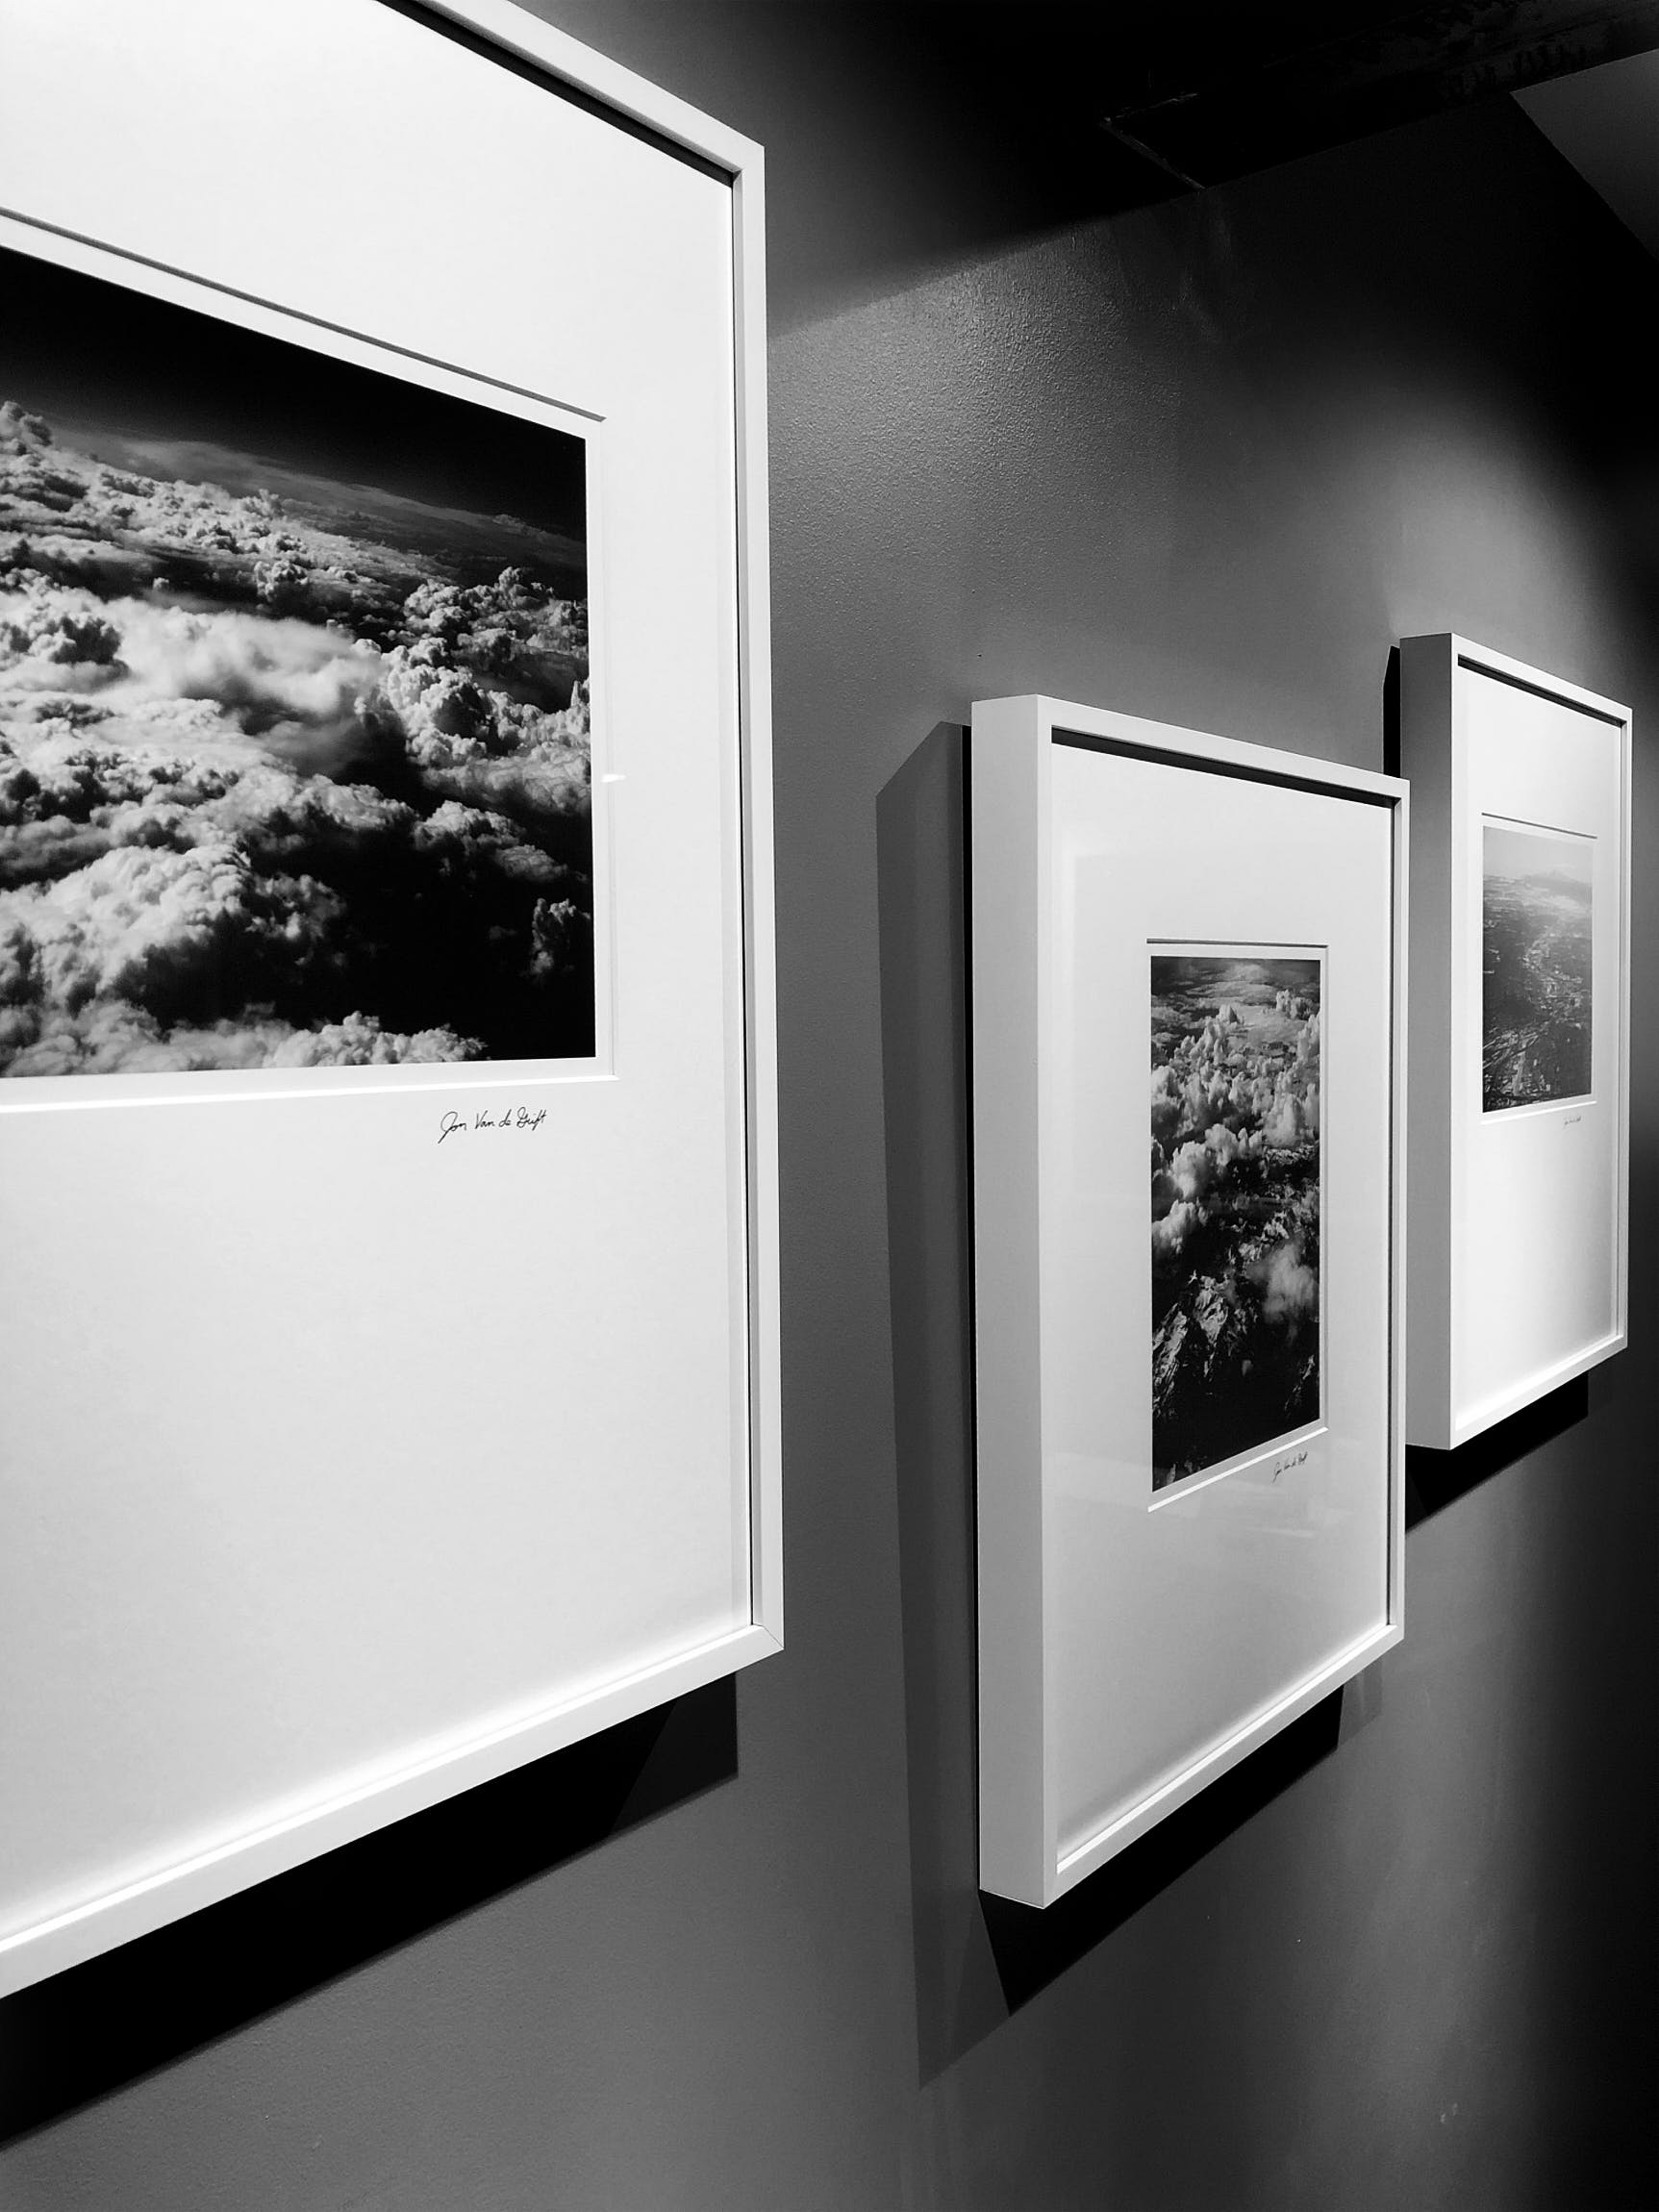 Photograph of framed black and white photos hanging on a wall